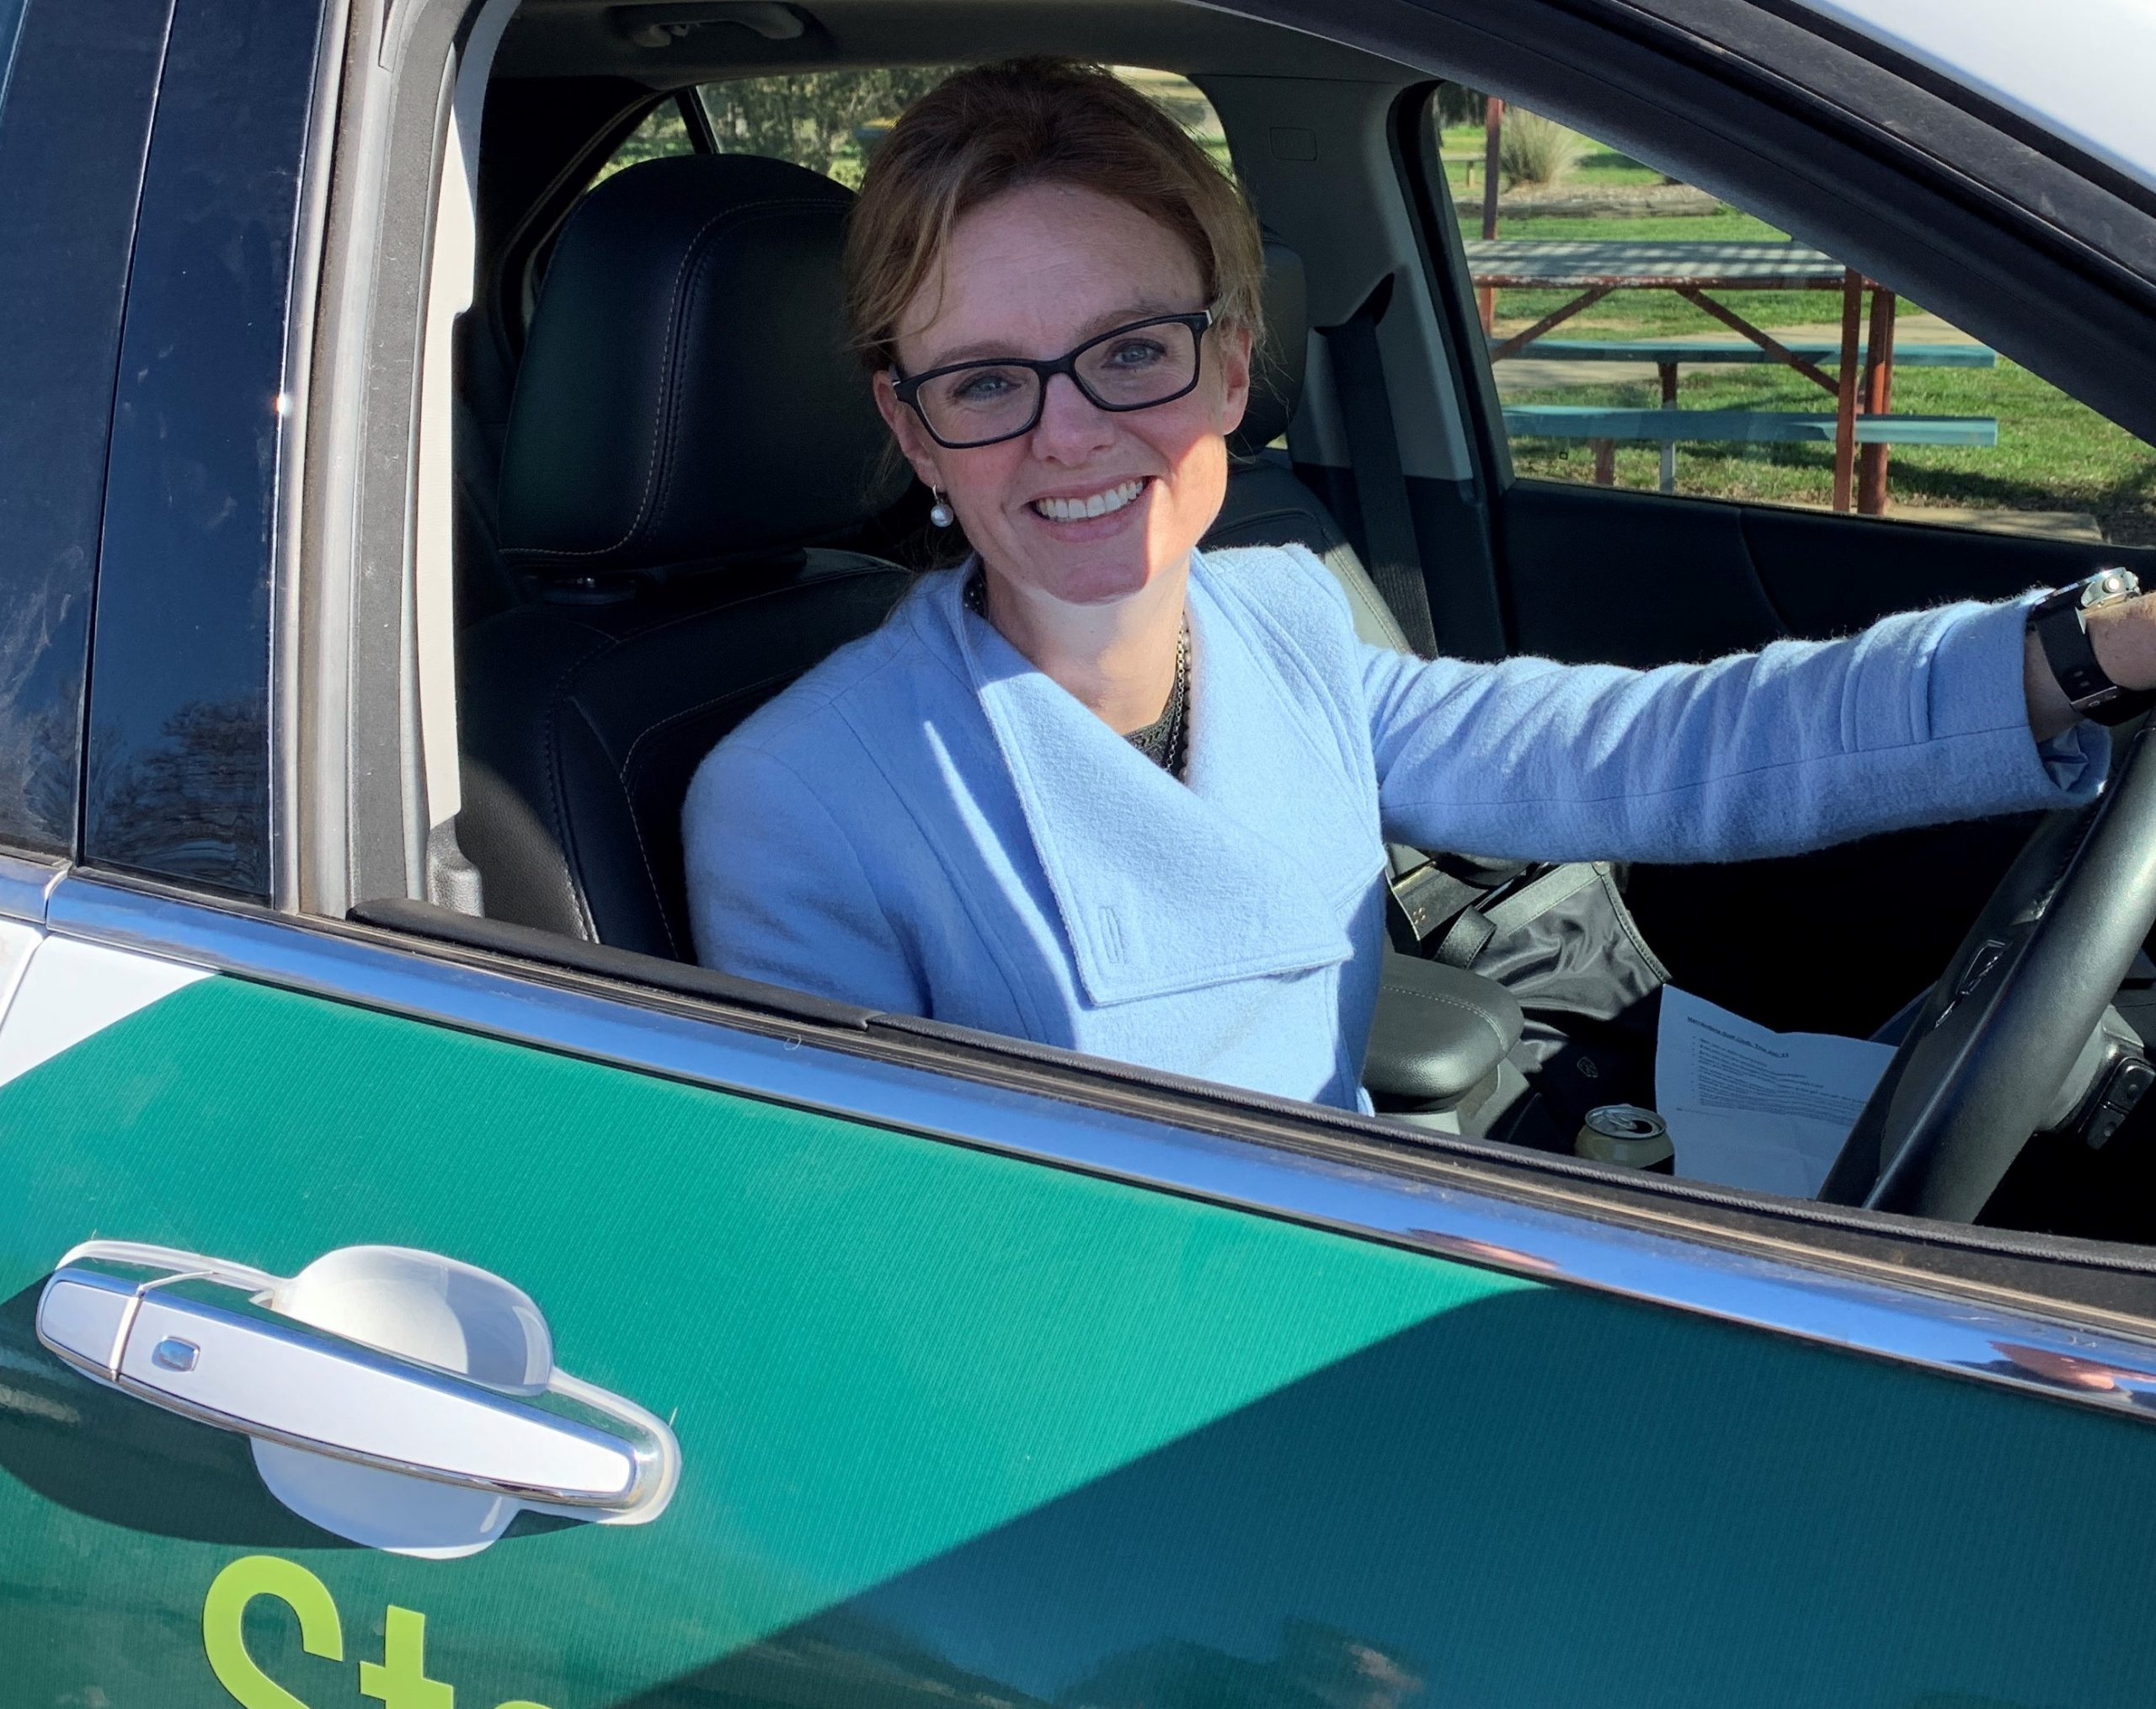 Steph Cooke smiling in her car on side of road.